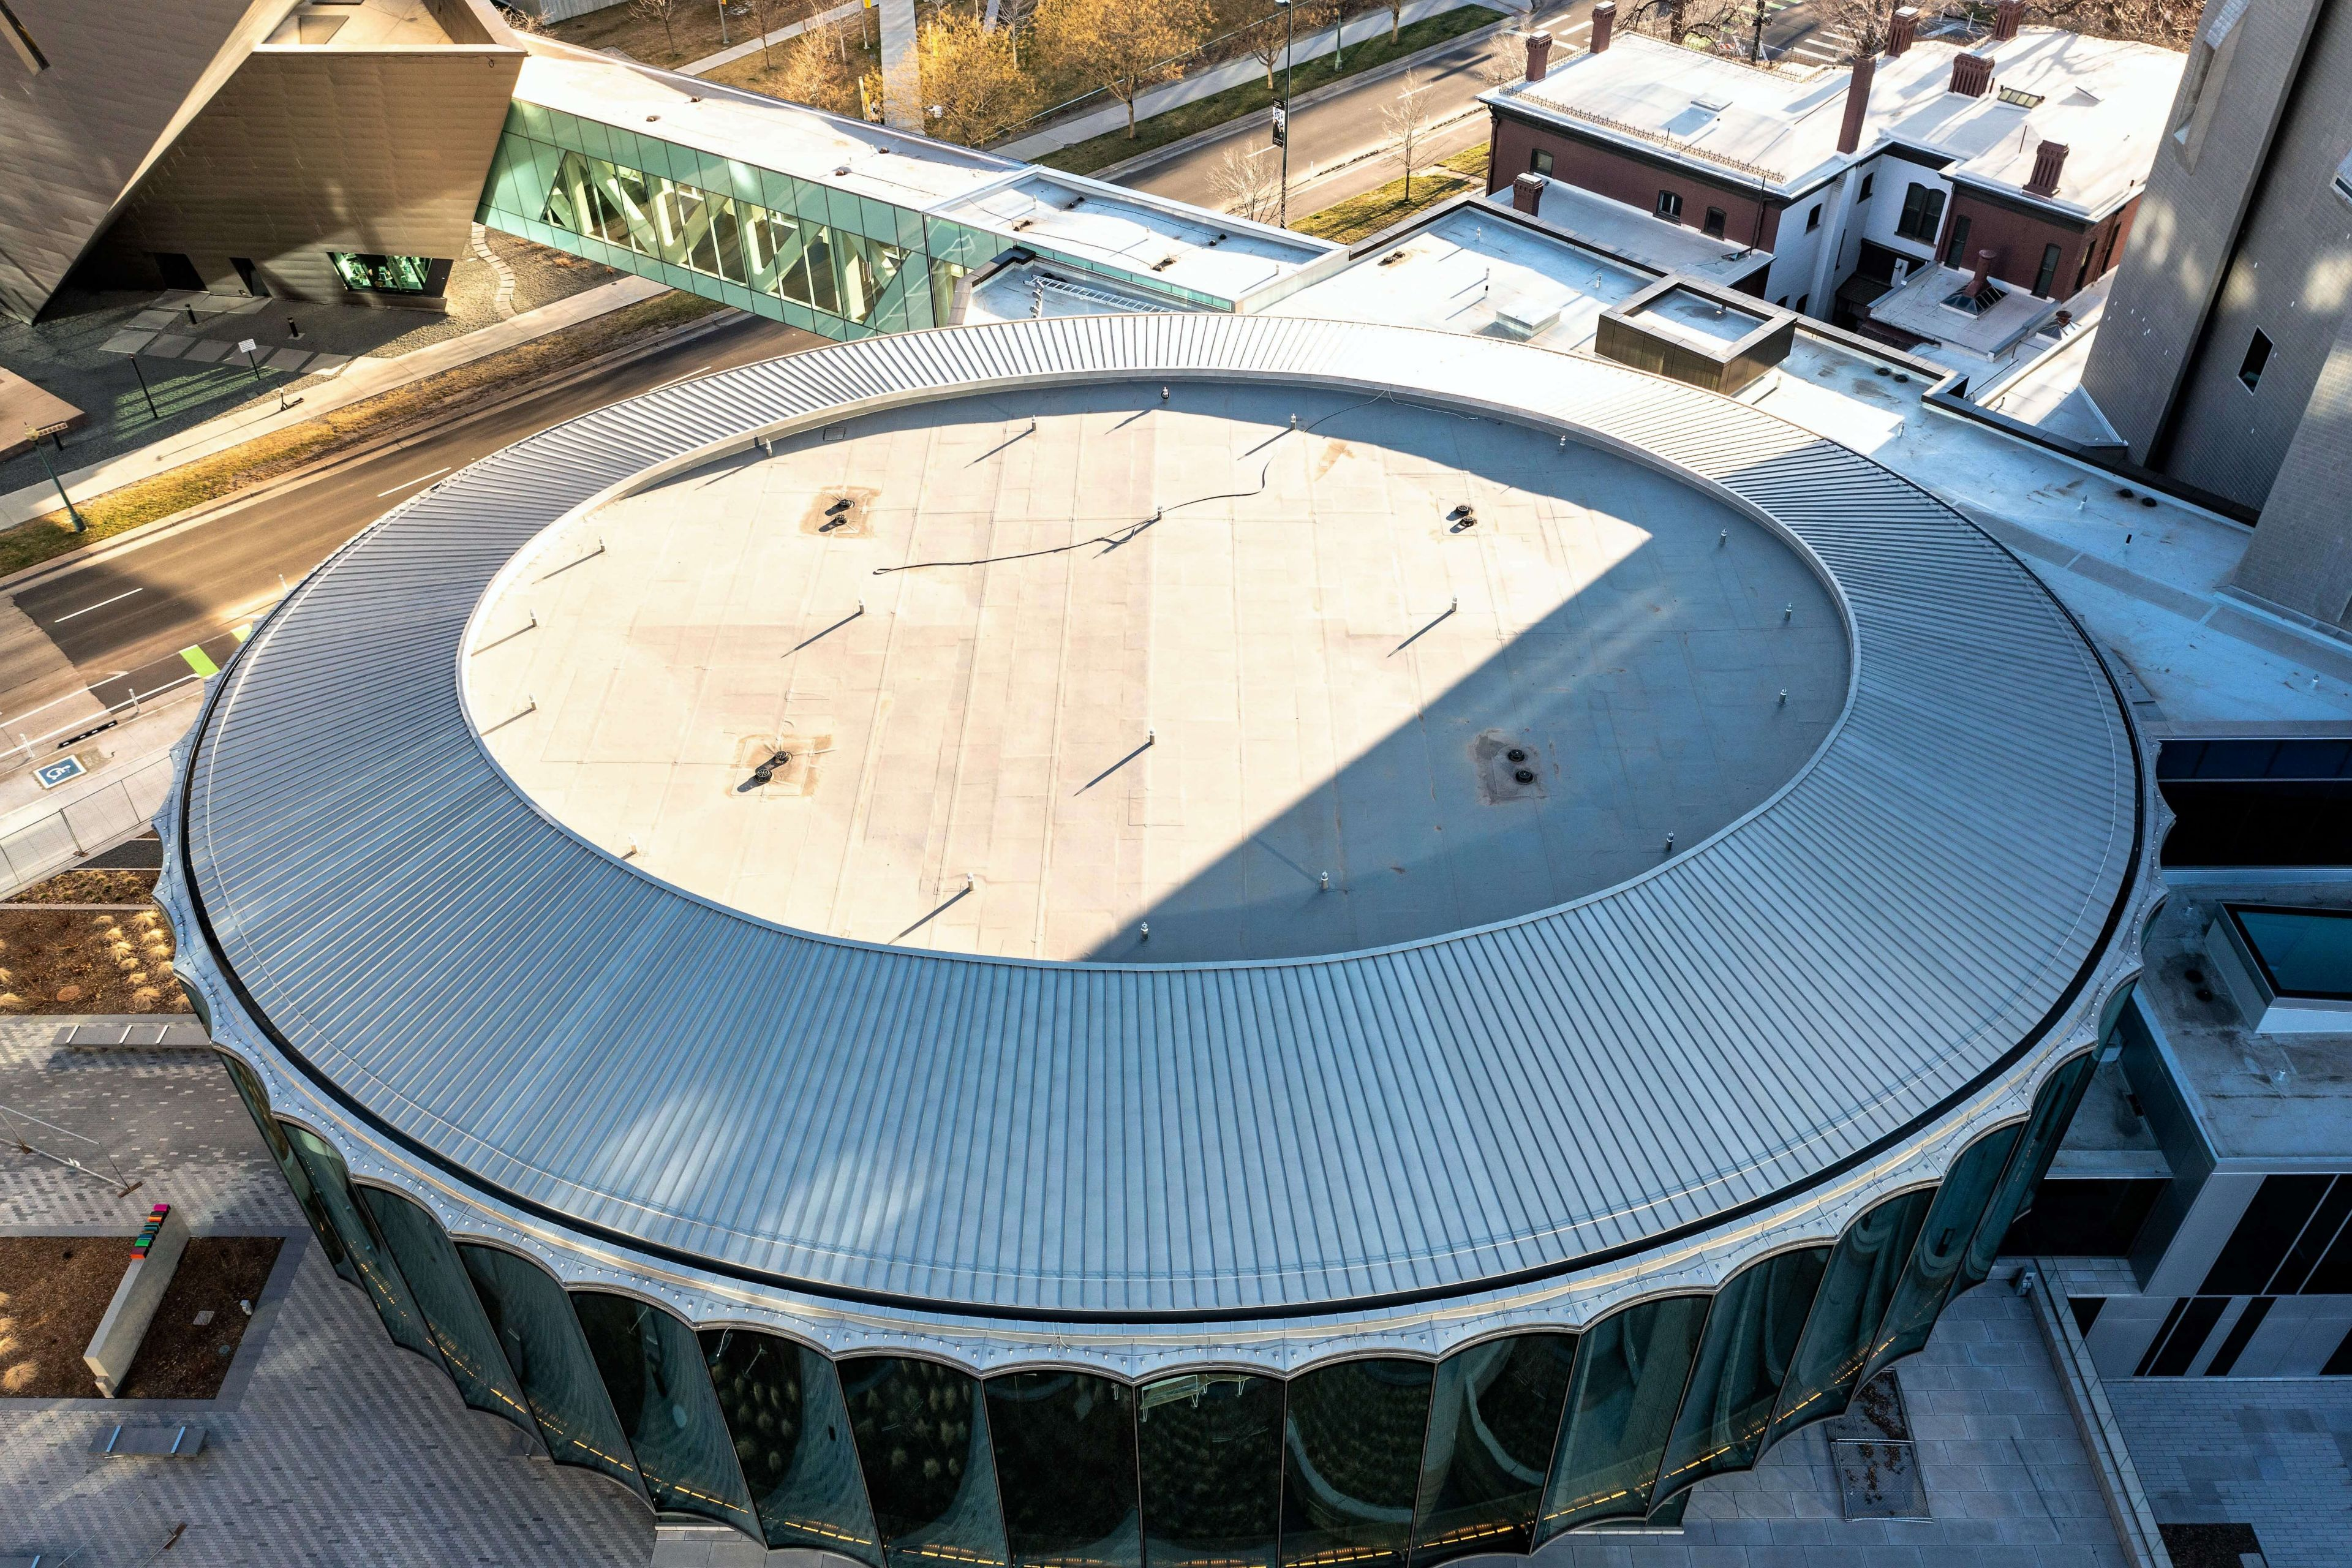 Aerial view of a section of the Denver Art Museum showing a white Sarnafil membrane on a circular roof with a ribbed roof outline